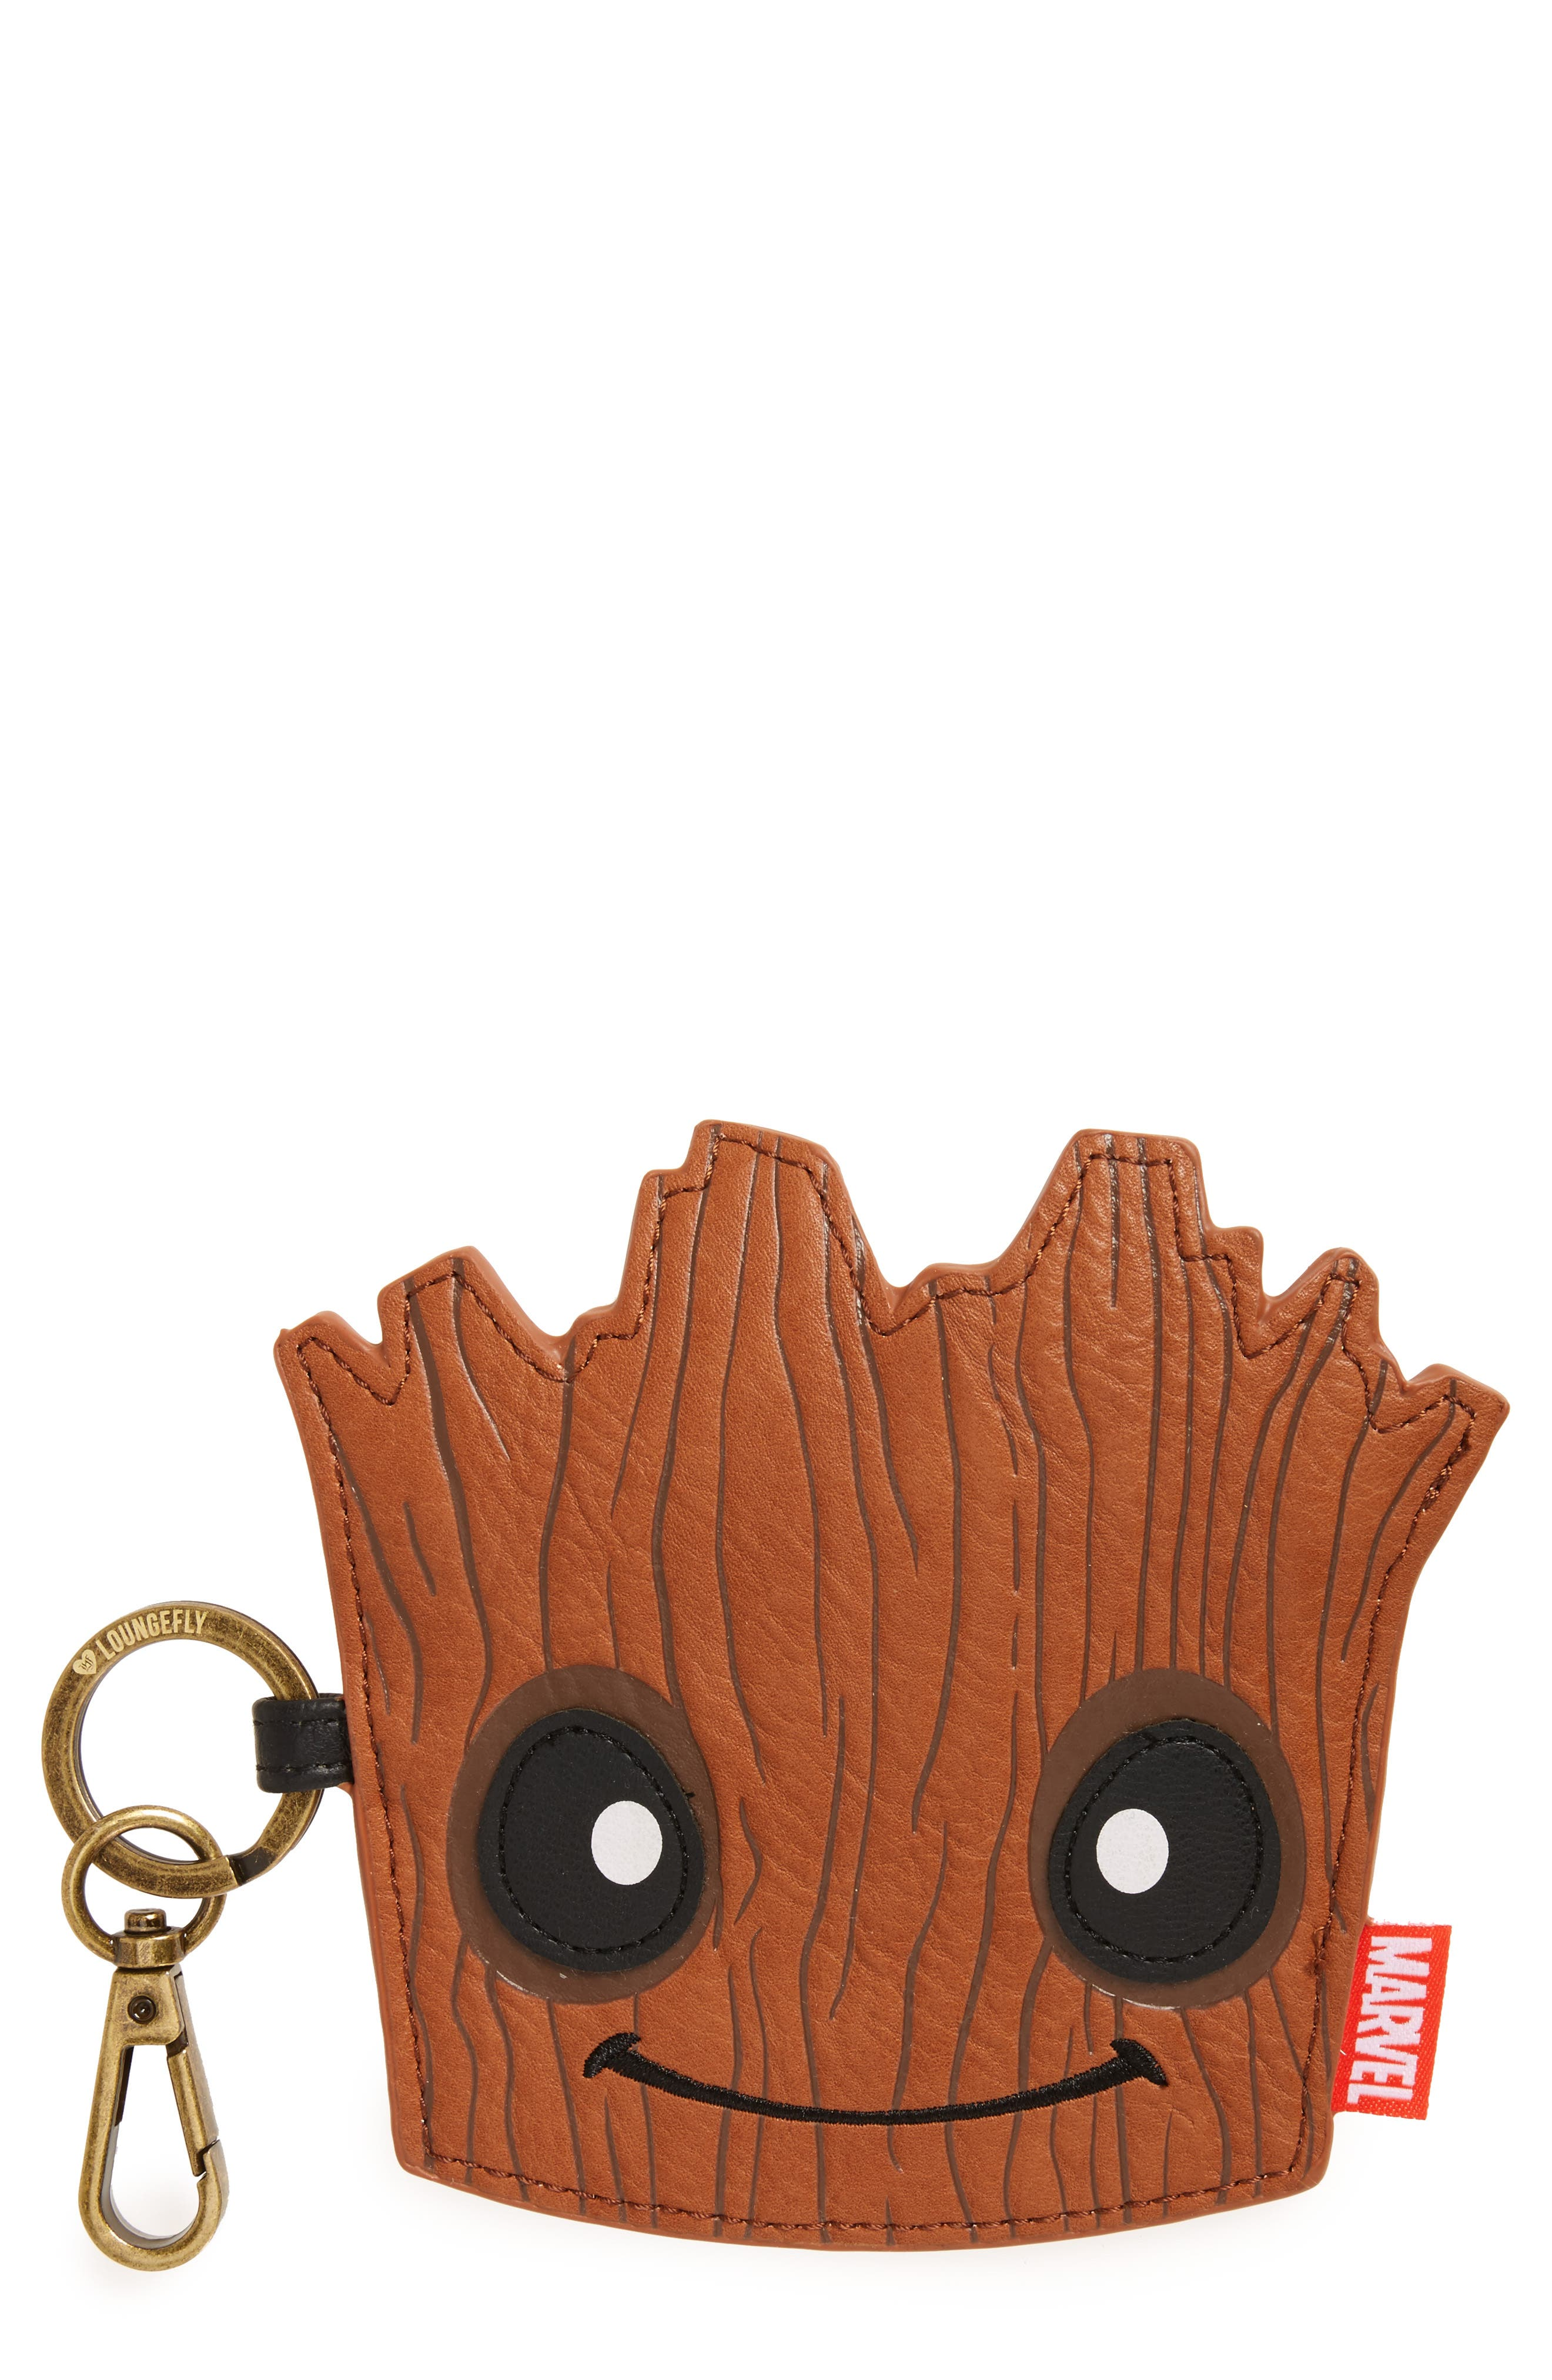 Groot Coin Bag,                             Main thumbnail 1, color,                             200